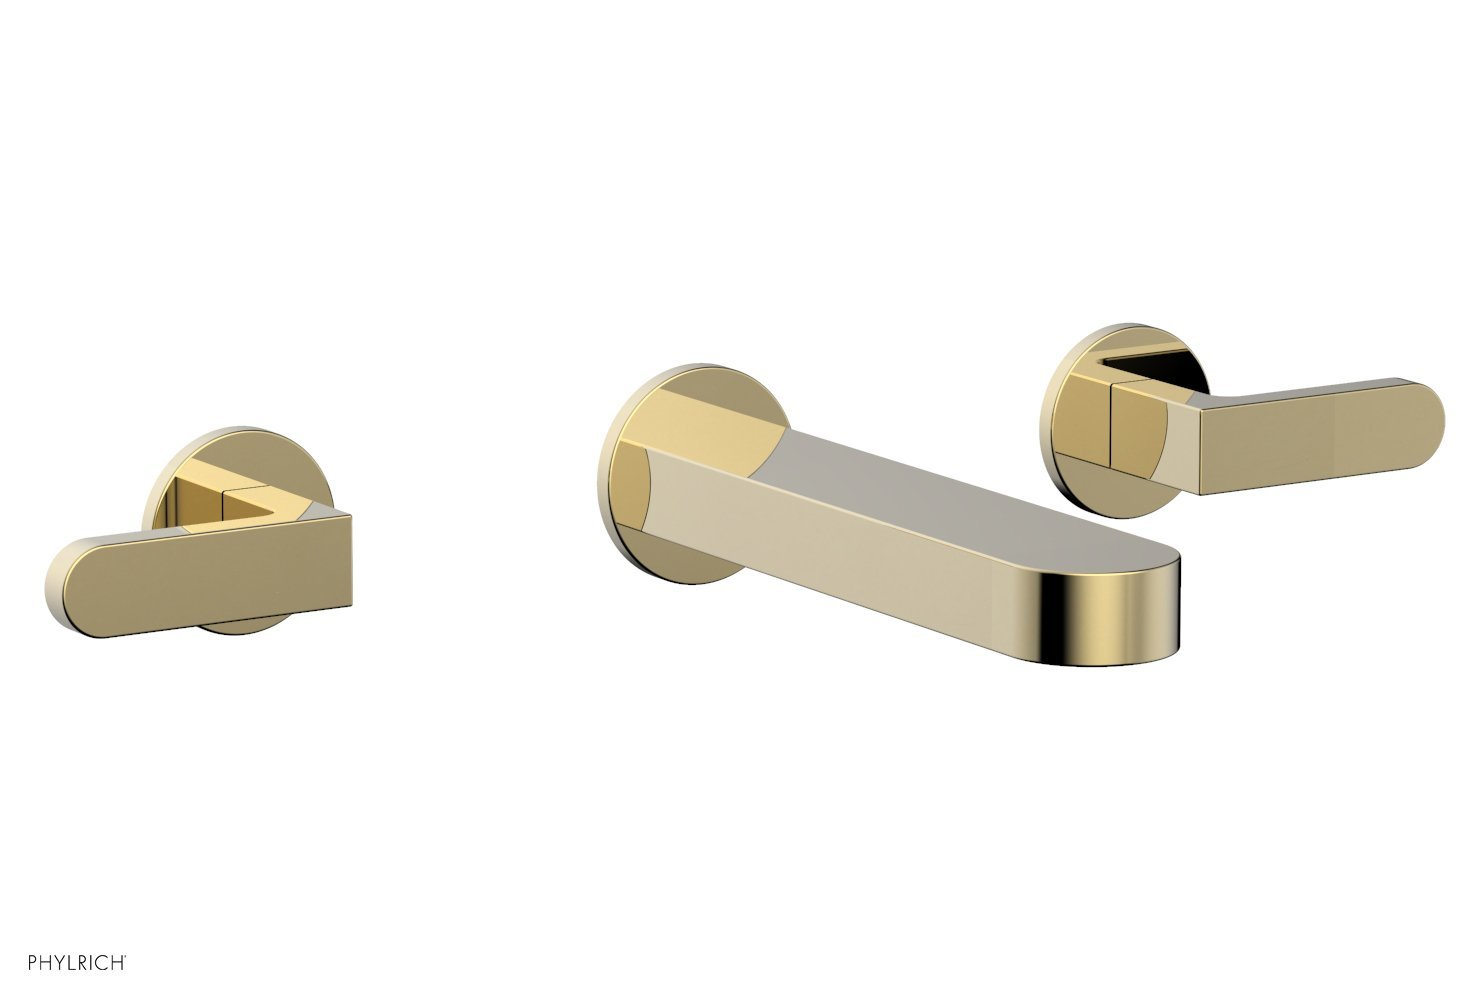 Phylrich 183-12-03U ROND Wall Lavatory Set - Lever Handles - Polished Brass Uncoated